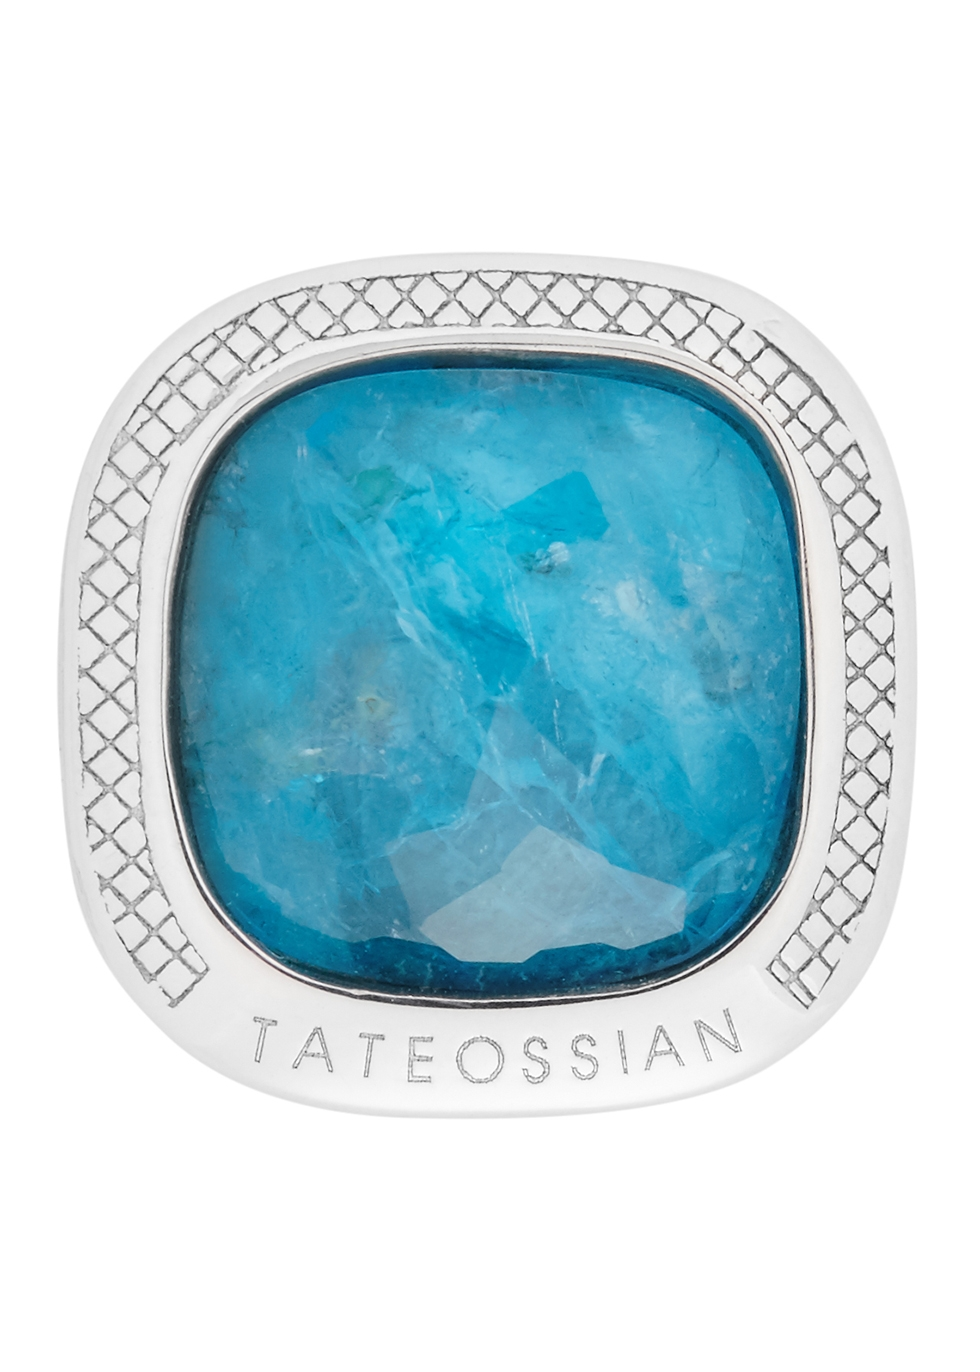 Cushion sterling silver apatite cufflinks - Tateossian